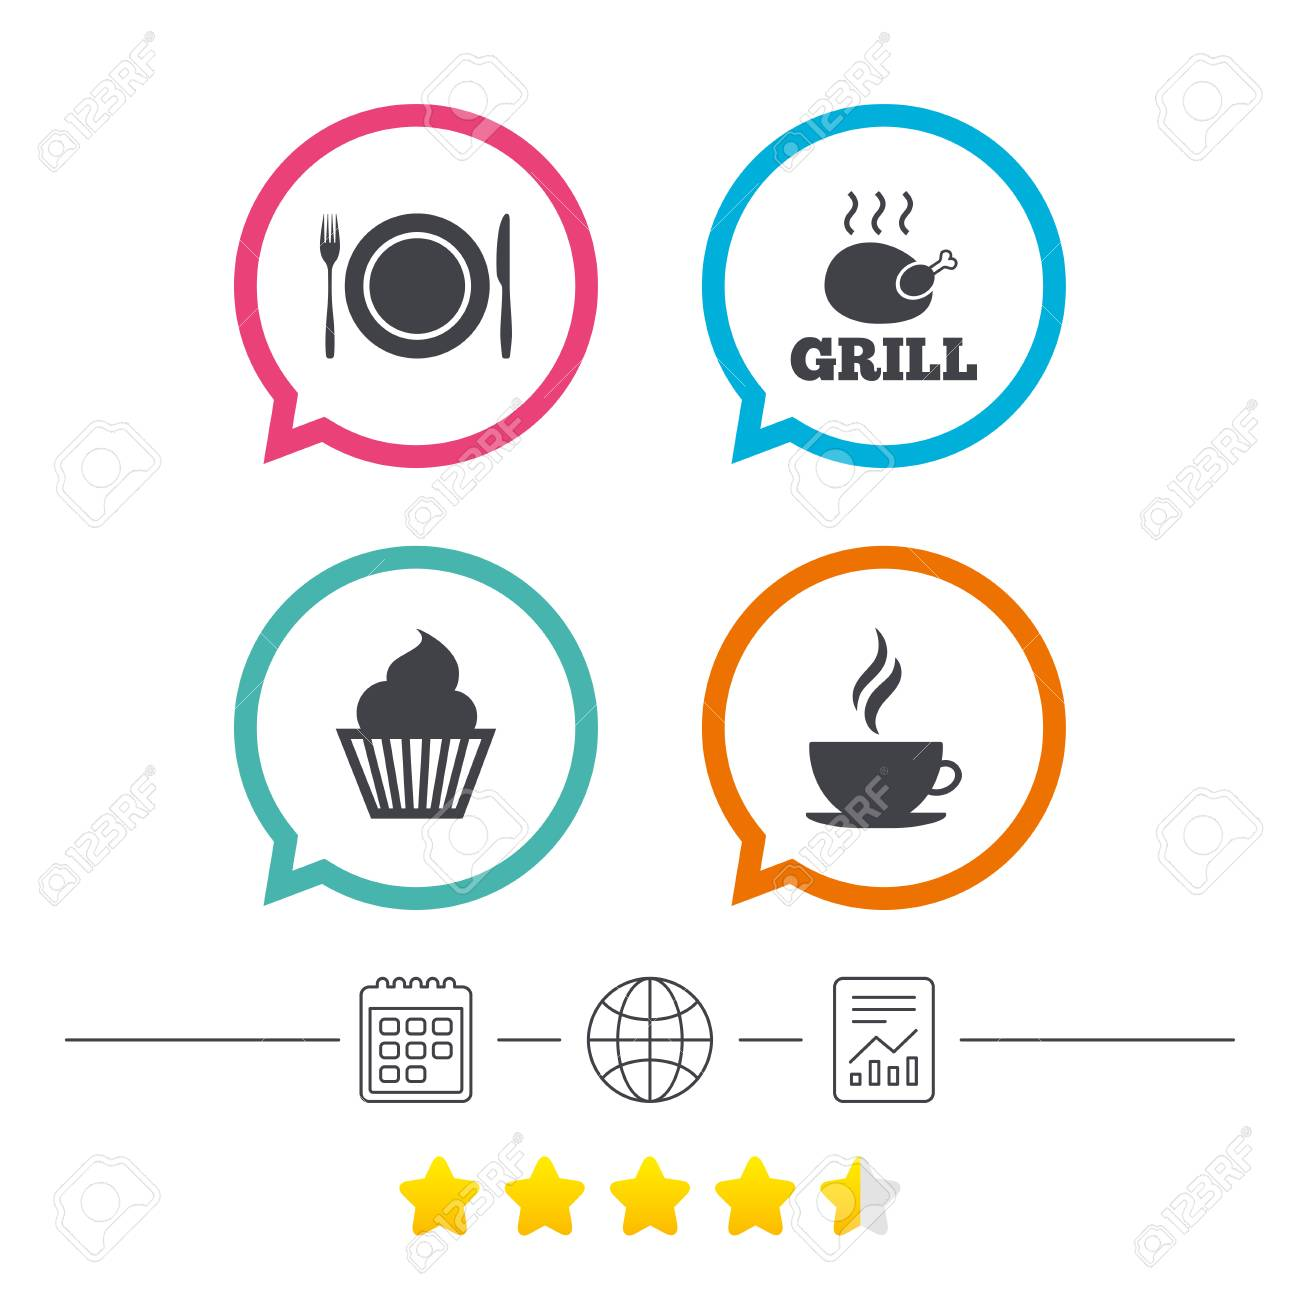 Food And Drink Icons Muffin Cupcake Symbol Plate Dish With